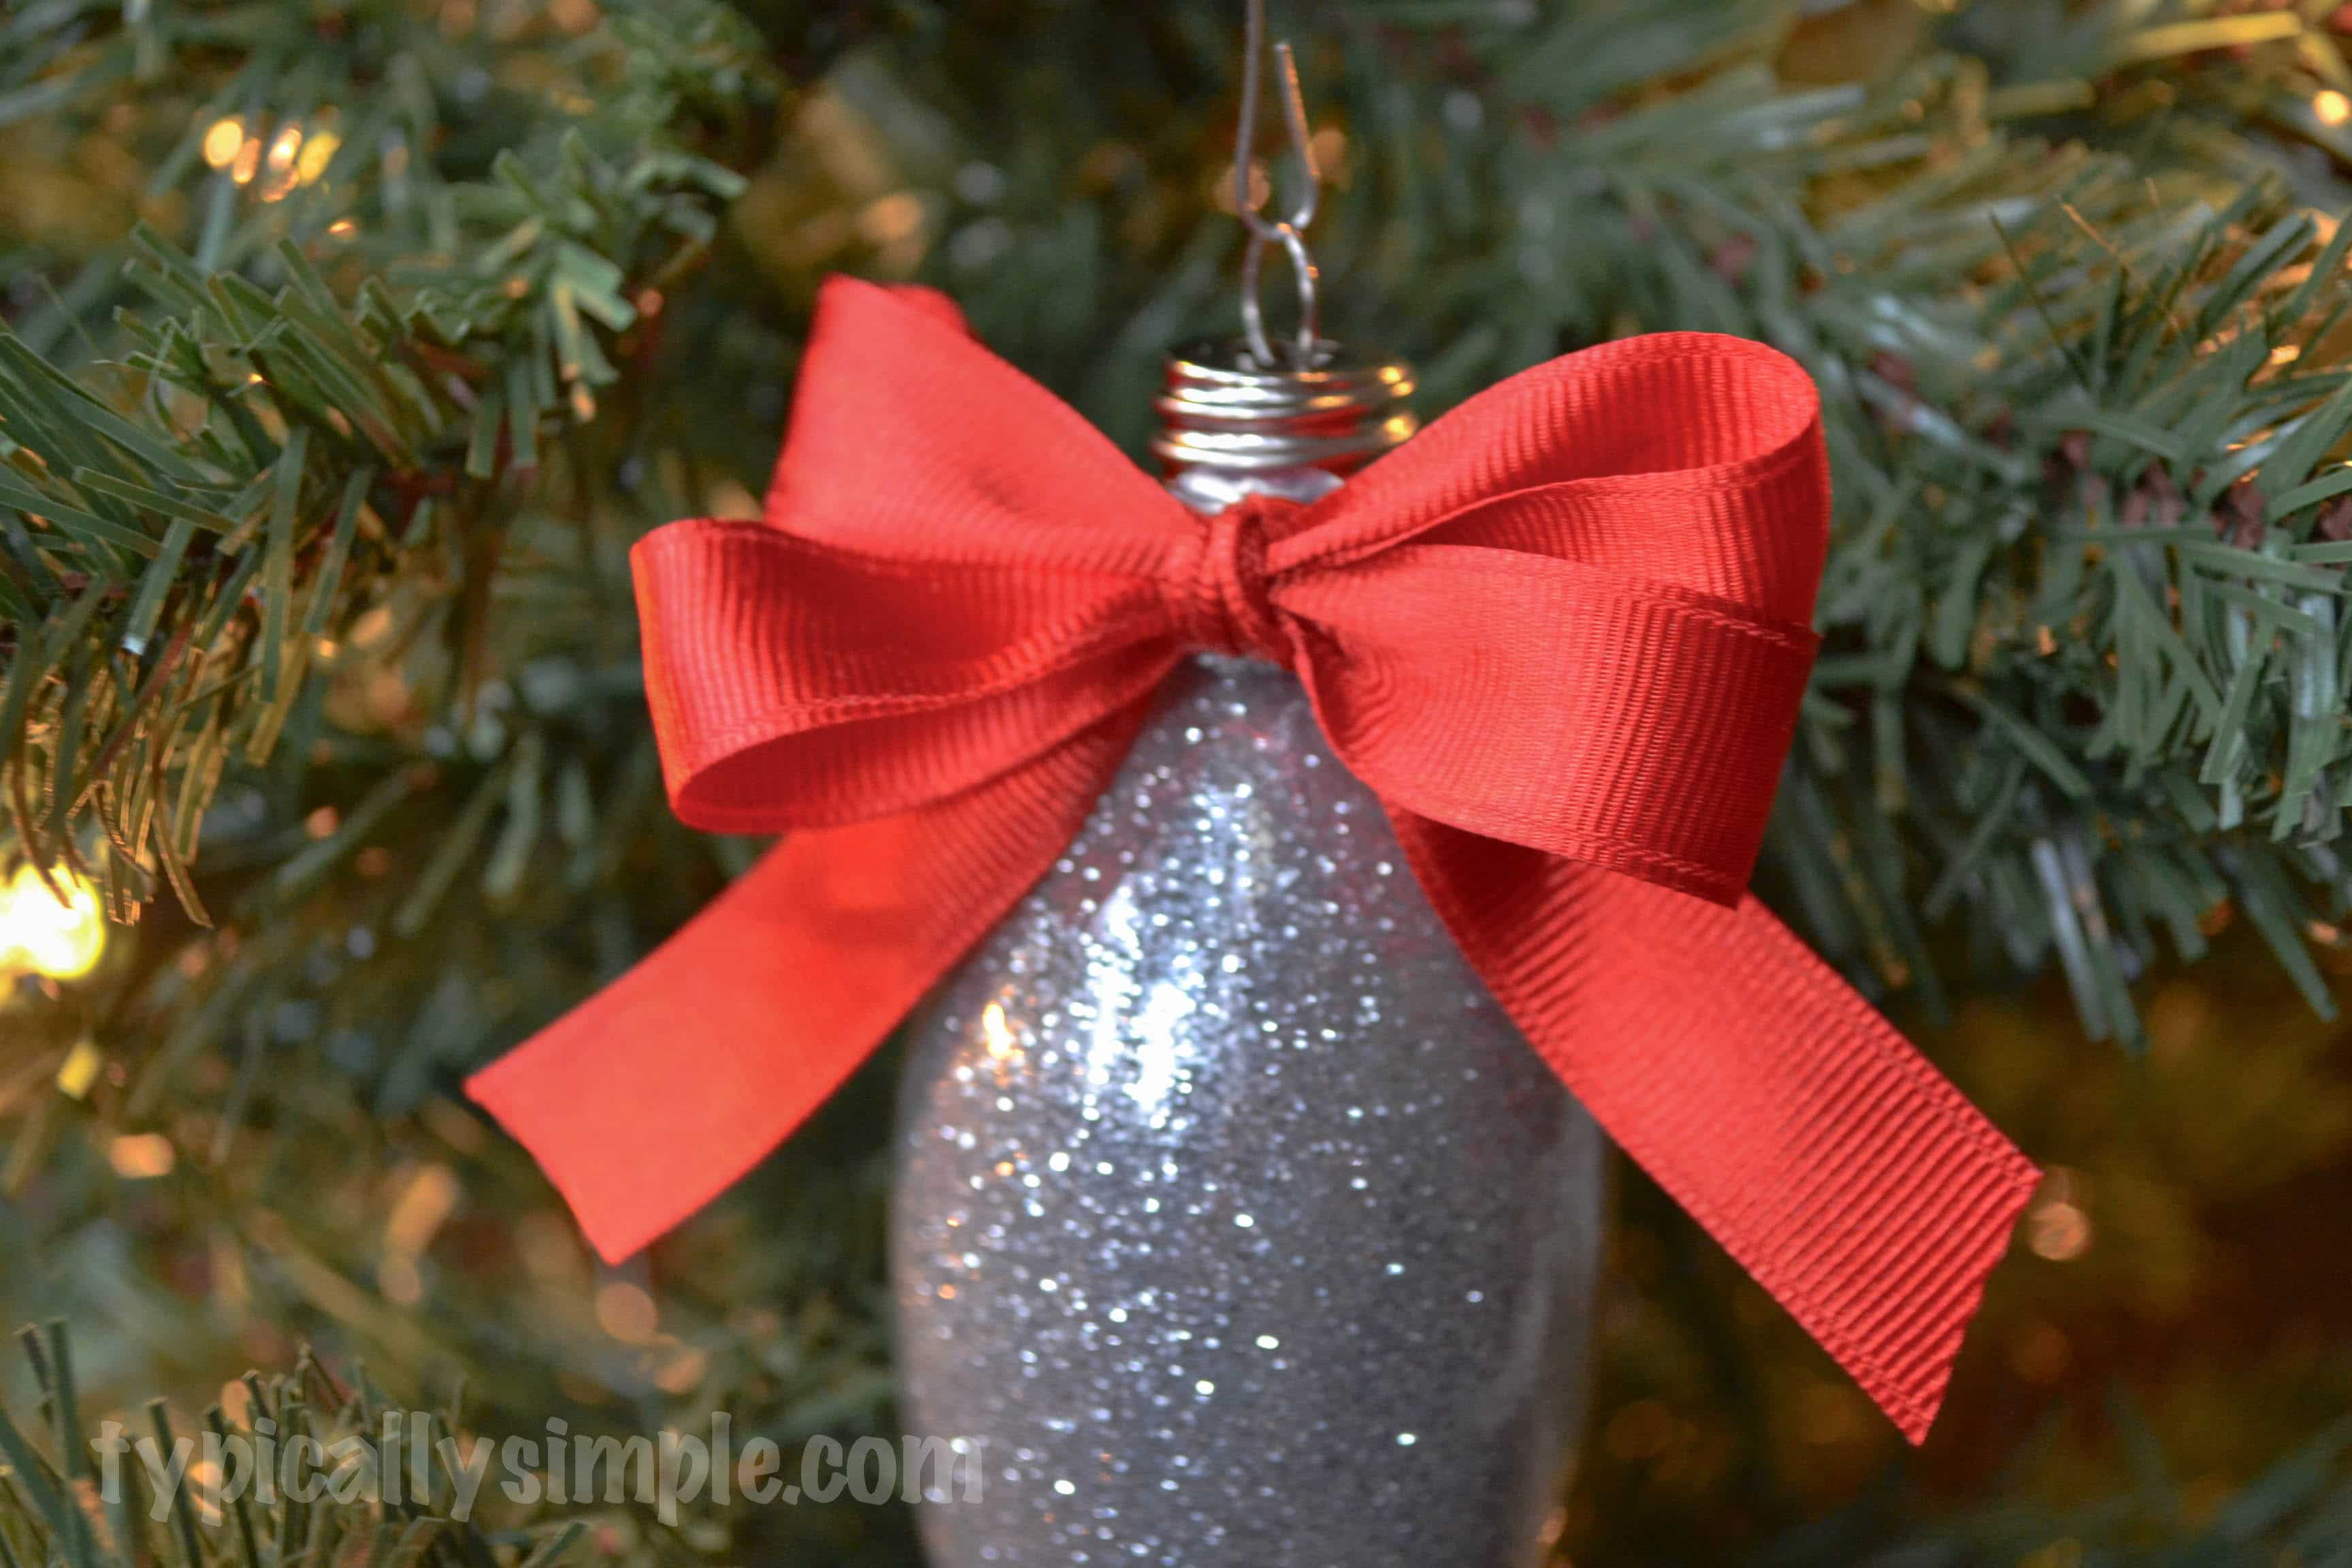 Light bulb ornaments - There Are So Many Tutorials Out There On How To Glitter The Inside Of Your Ornament But My Tried And True Method Is Using Hair Spray I Pour A Little In